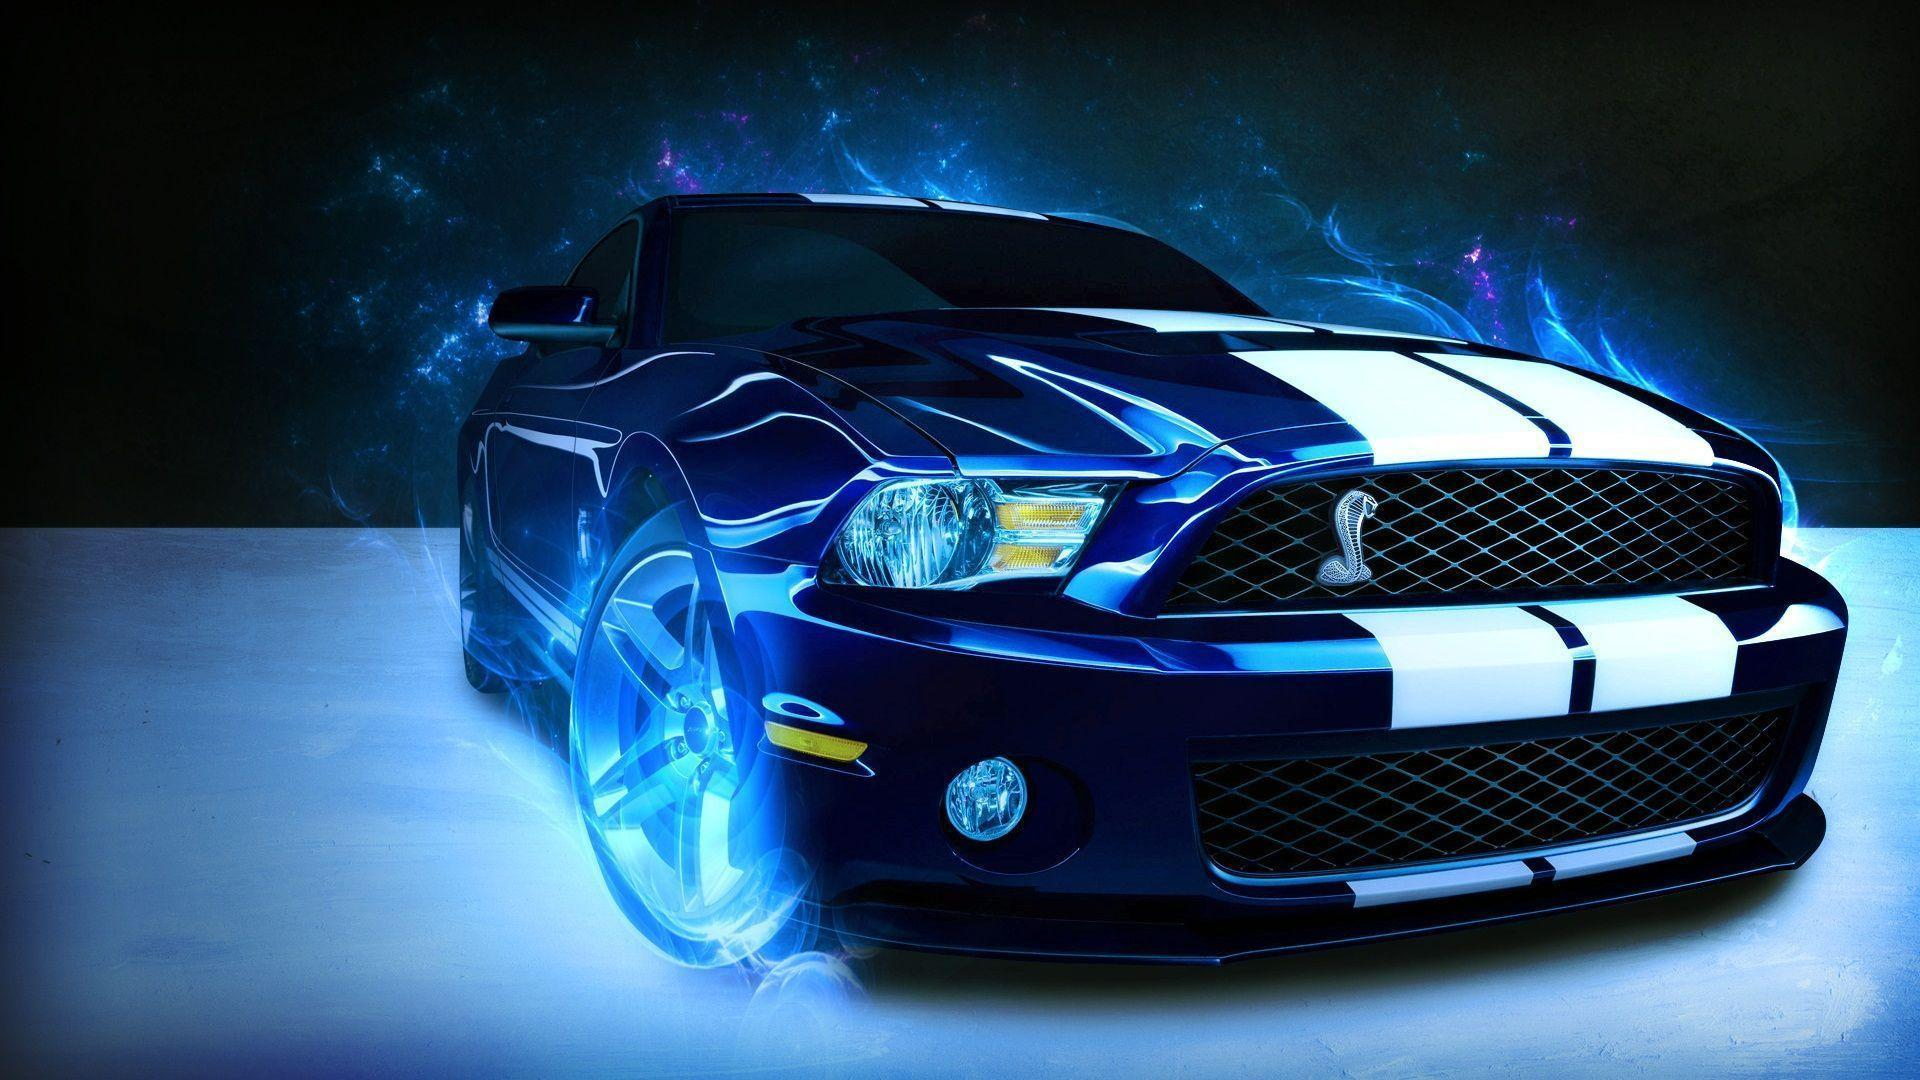 Ford Mustang 65 >> Ford Mustang Wallpapers - Wallpaper Cave